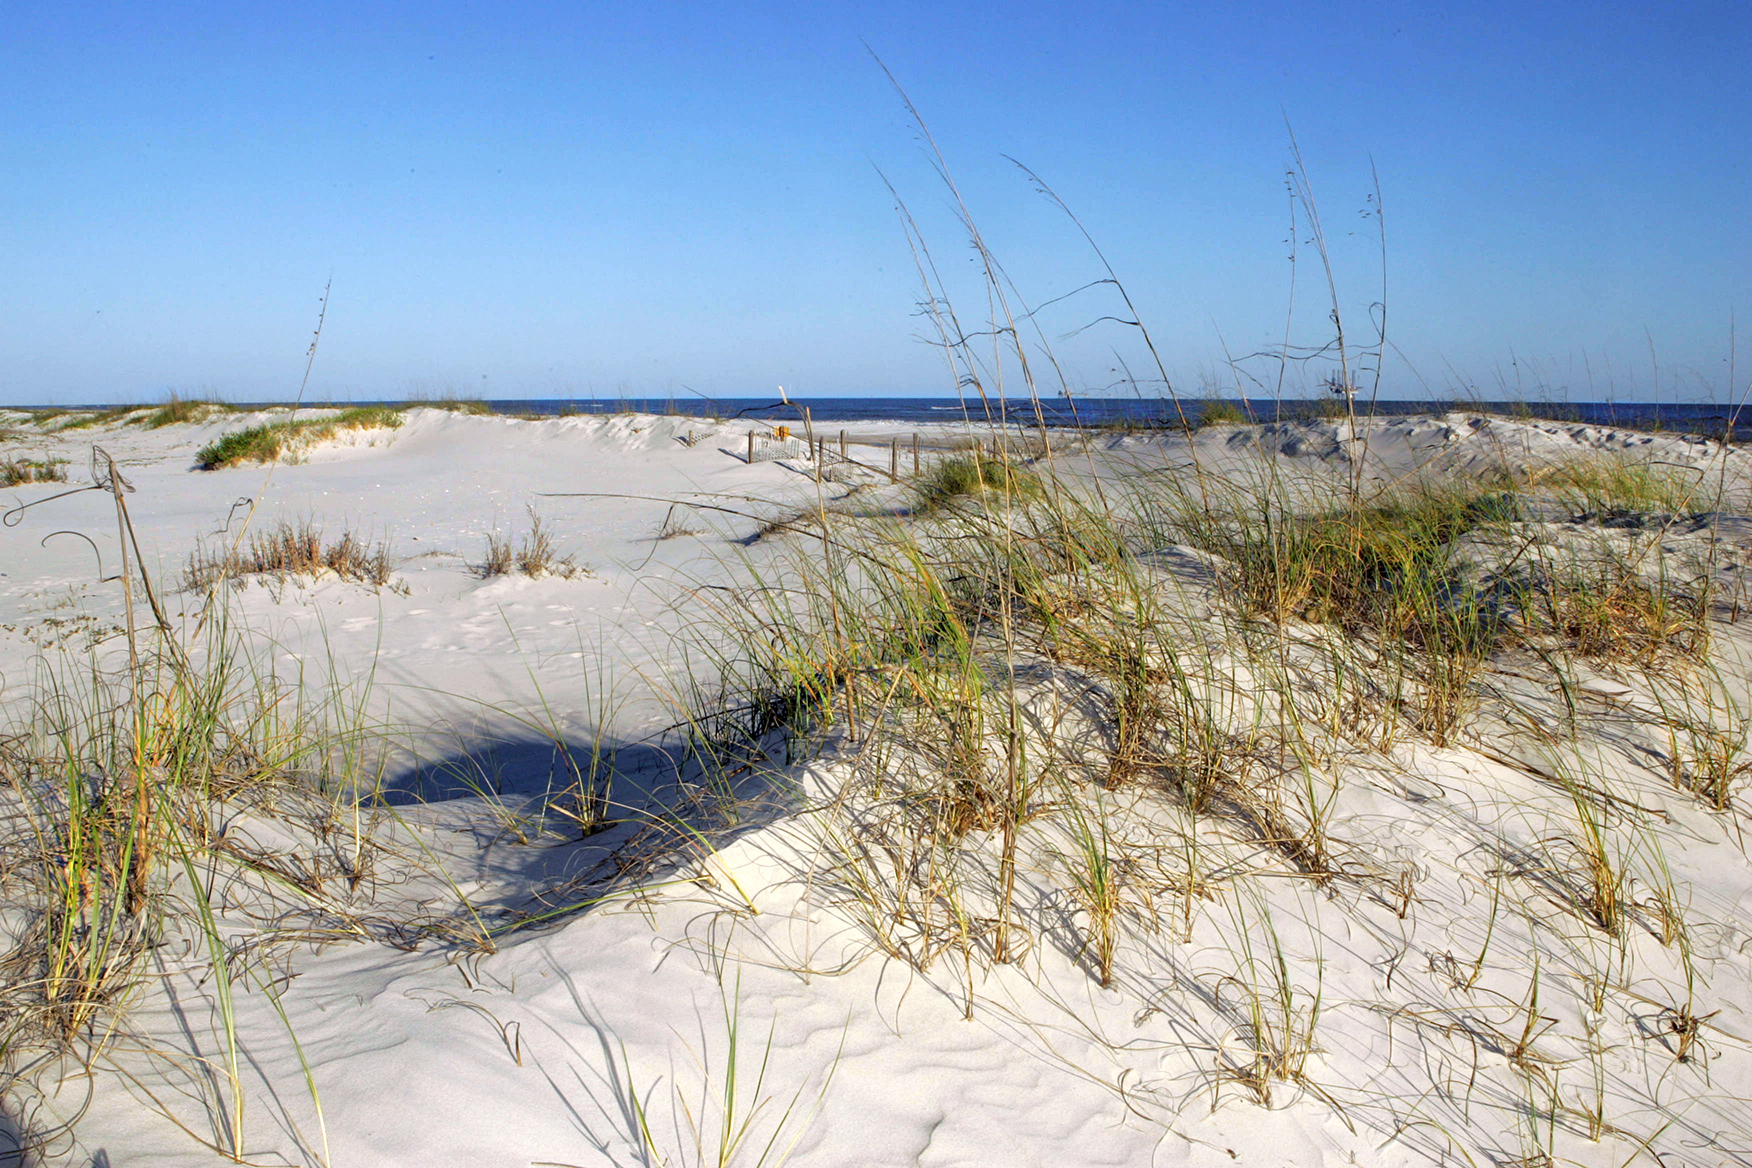 Dunes and grass at a beach in the Bon Secour National Wildlife Refuge